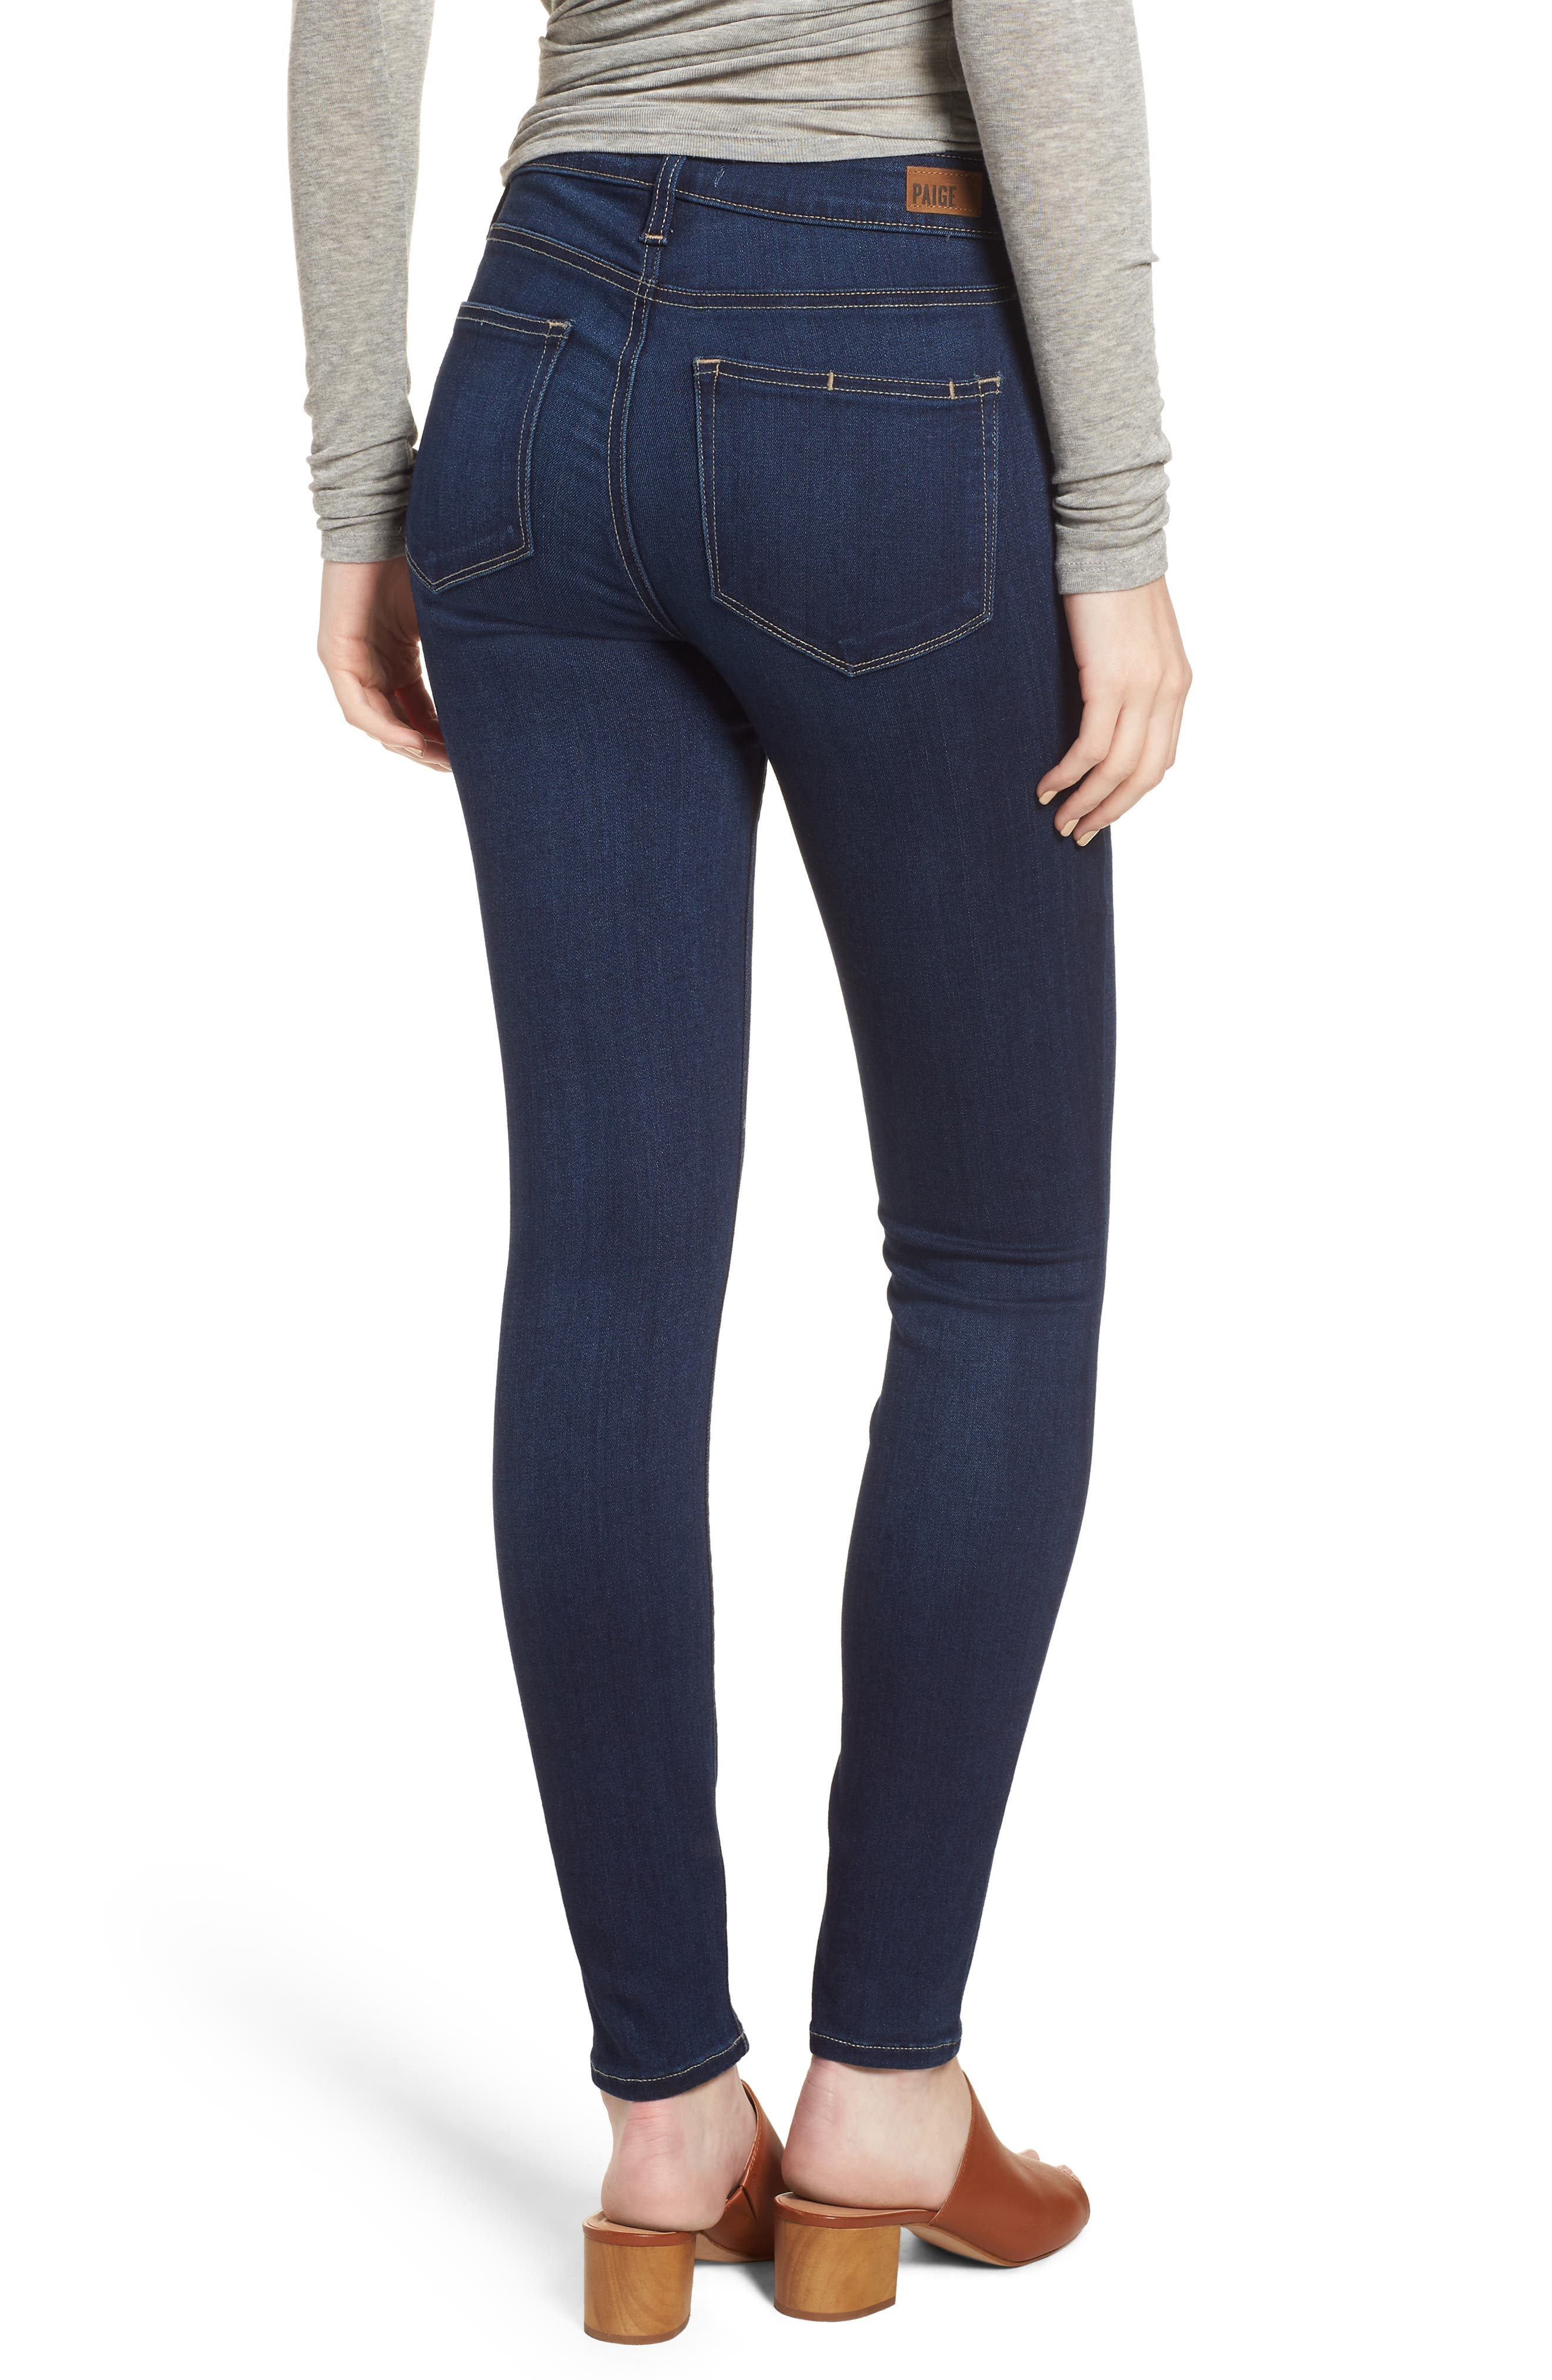 Hoxton High Waist Ankle Skinny Jeans,                             Alternate thumbnail 2, color,                             Calani